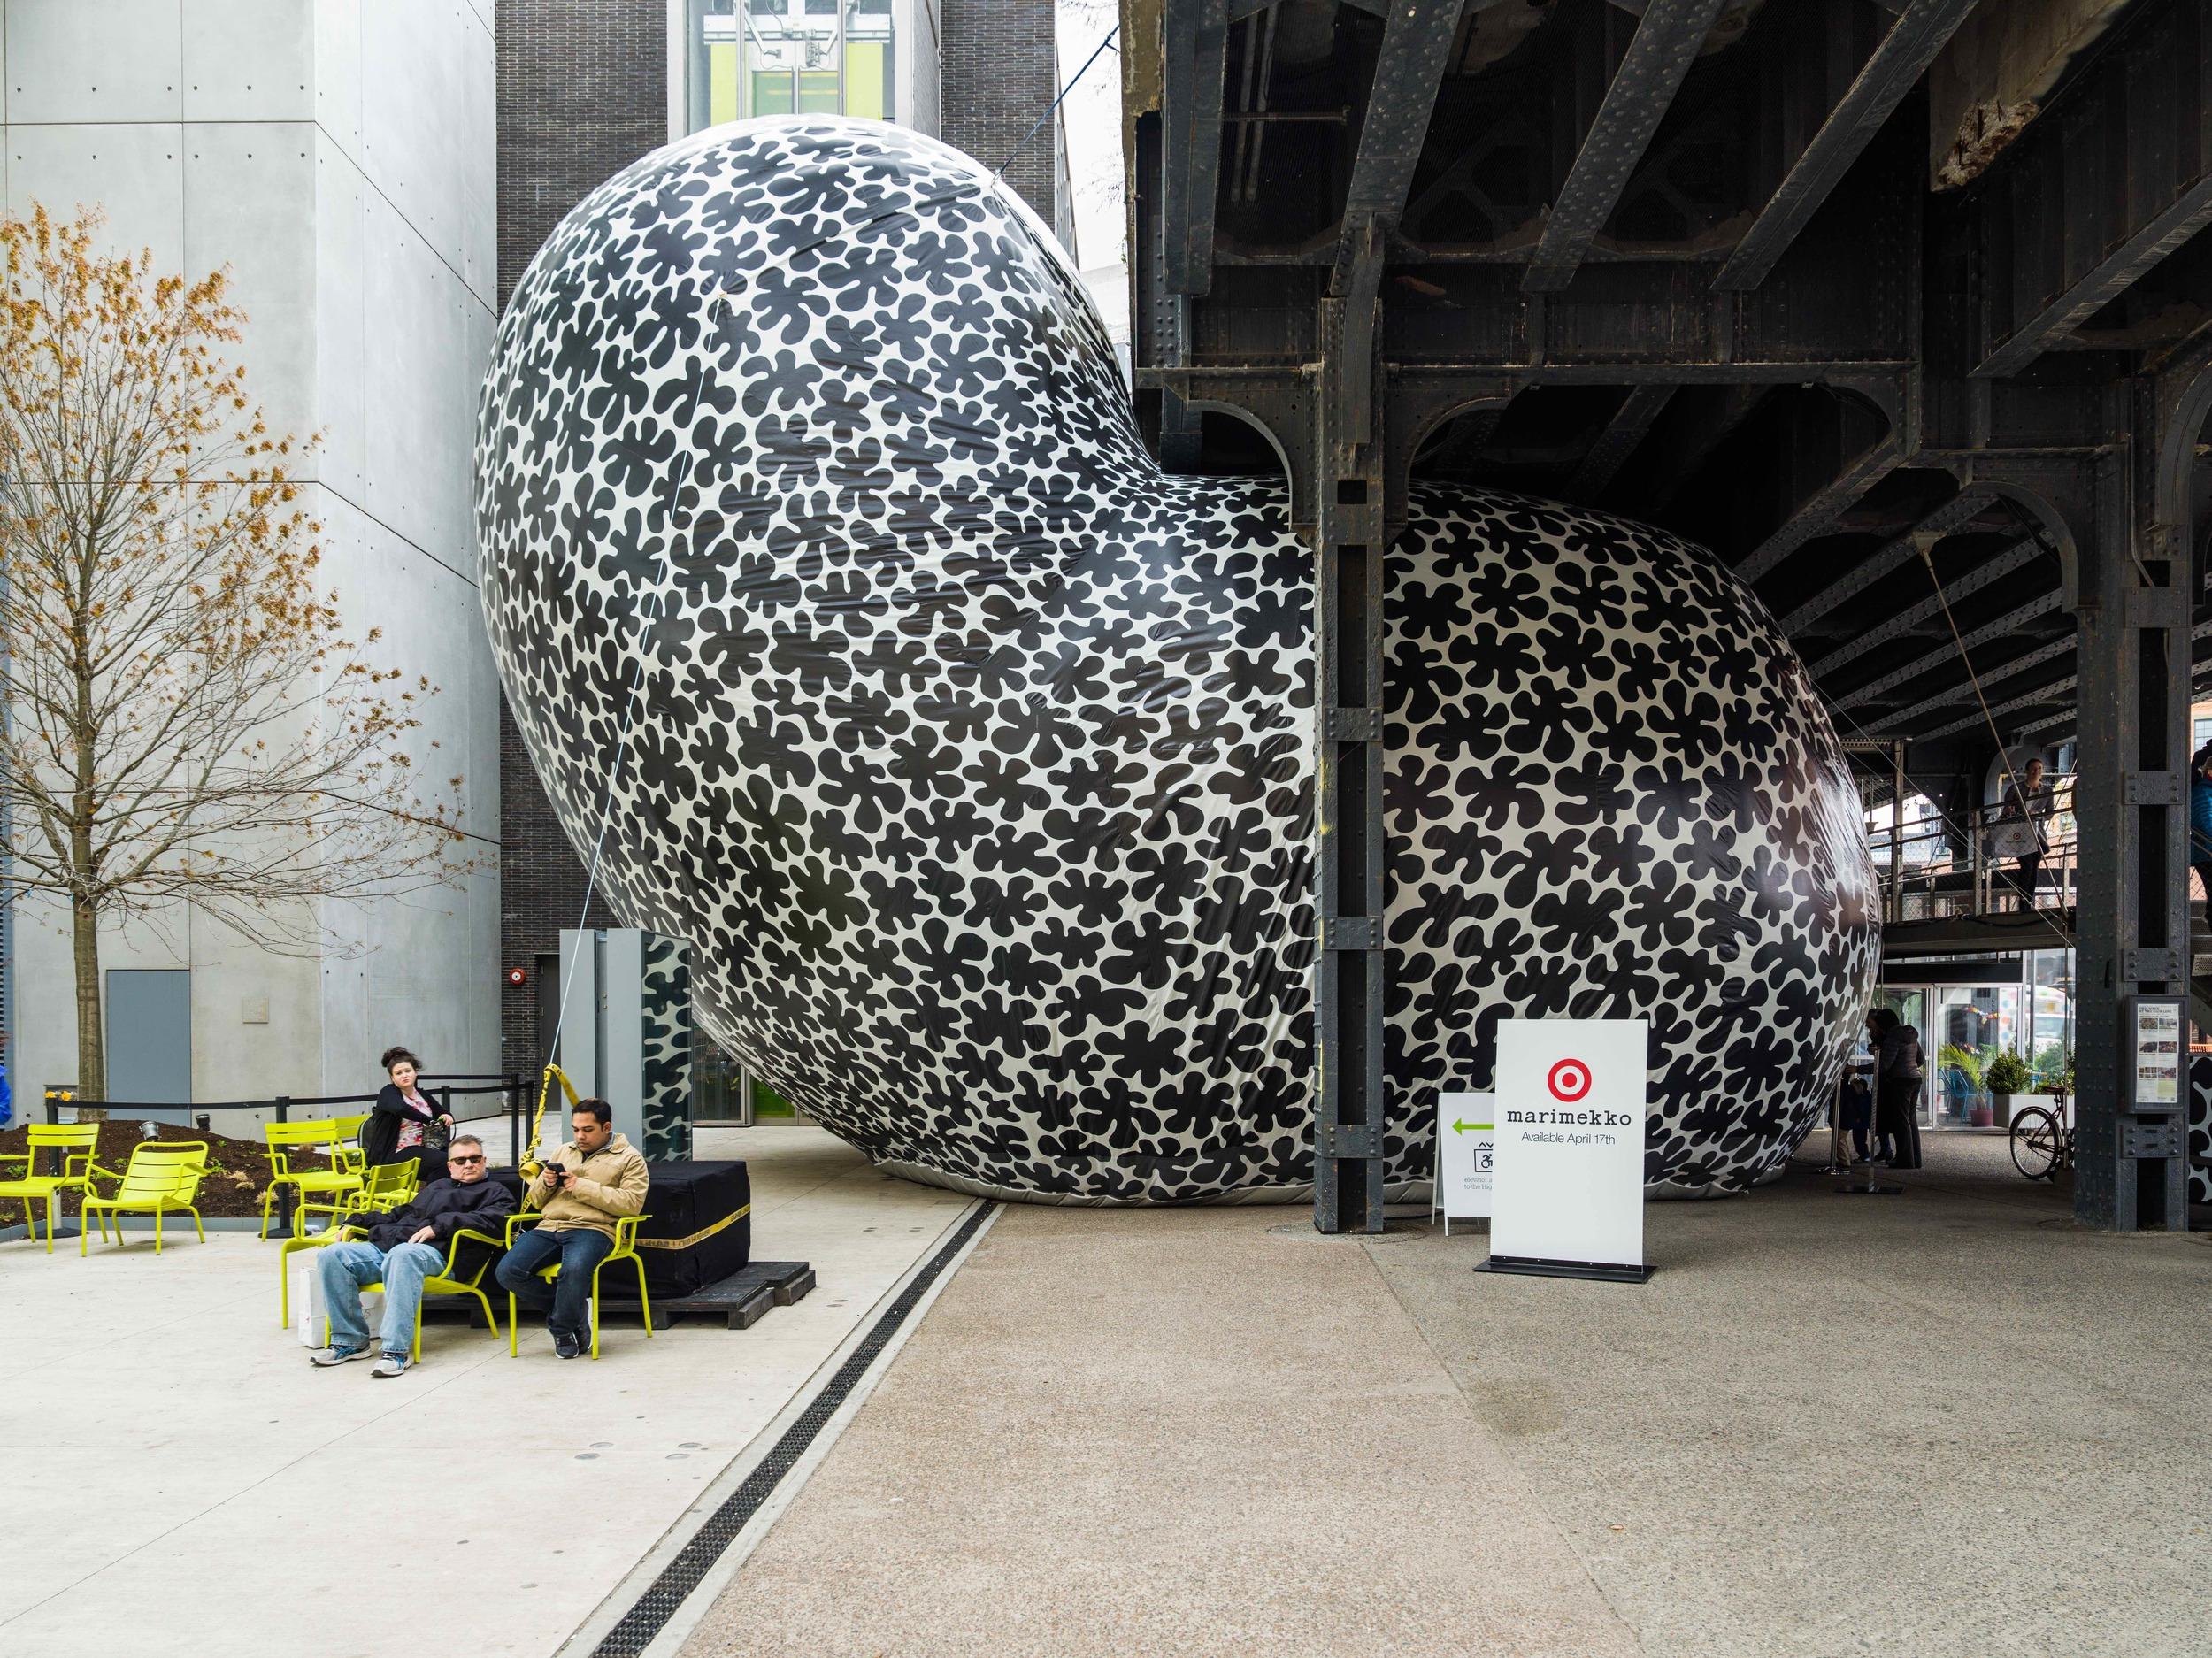 Koppelo Pouf is an asymmetric world covered in black and white dots. Guests lie on large memory foam forms beneath a mirrored ceiling. Surrounded by the Koppelo pattern, they snap their image in the mirrors hanging from the ceiling.